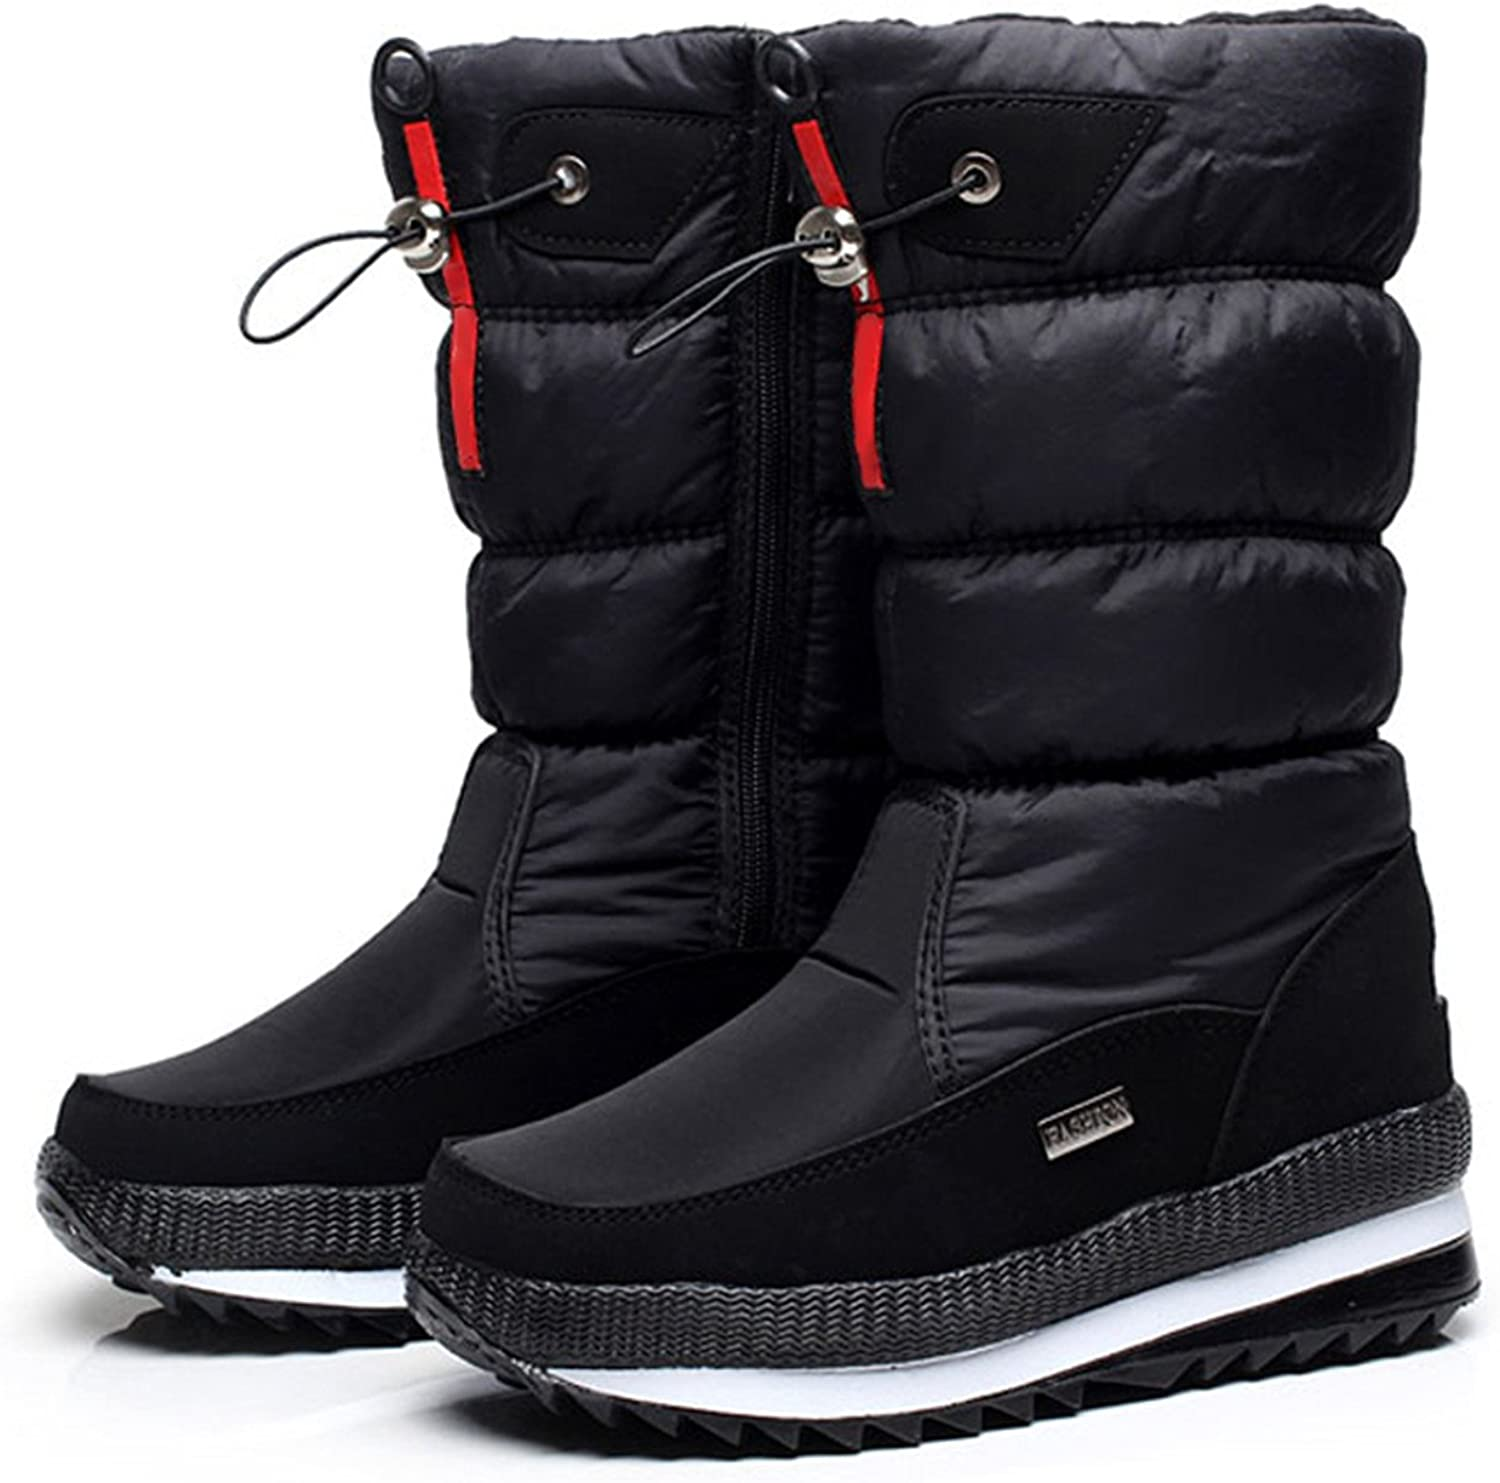 Taylor Heart Nice;Fashion New New Women's Boots Winter shoes Thick Outdoor Non-Slip Waterproof Snow Boots for Women Botas women bota Feminina